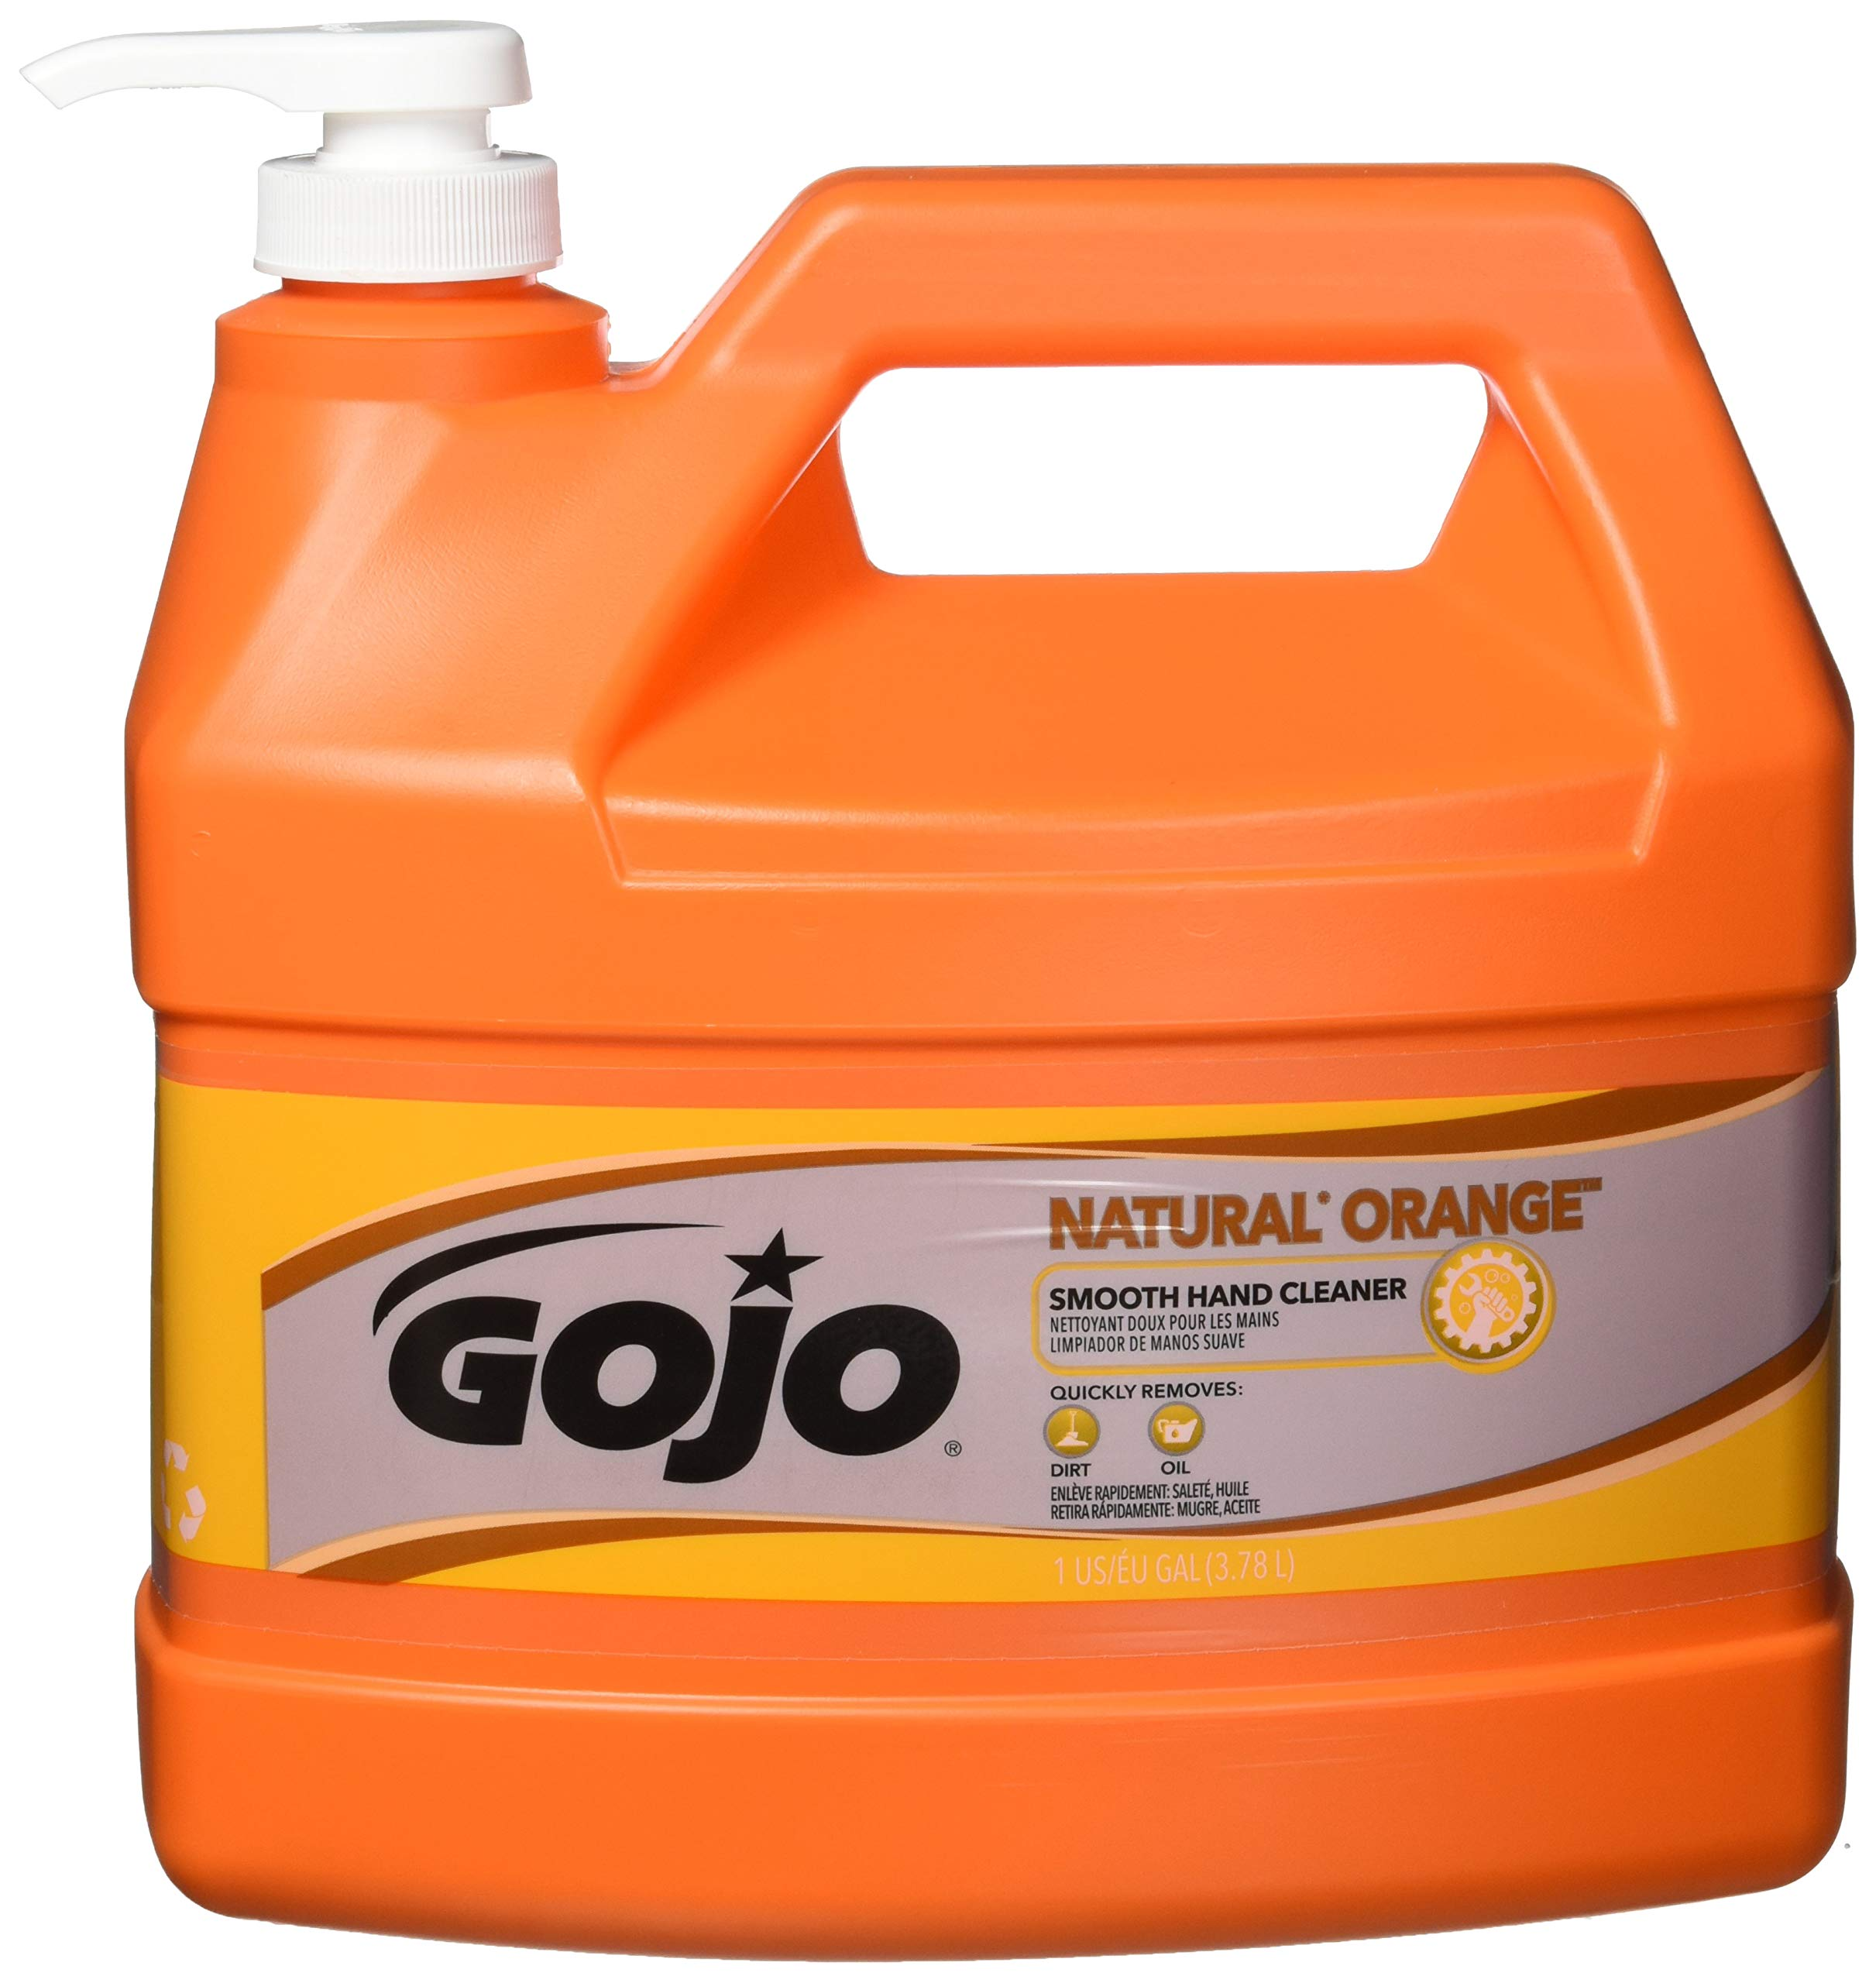 GOJO Natural Orange Smooth Hand Cleaner, Citrus Scent, 1 Gallon Quick Acting Hand Cleaner Pump Bottle (Case of 4) - 0945-04 by Gojo (Image #1)